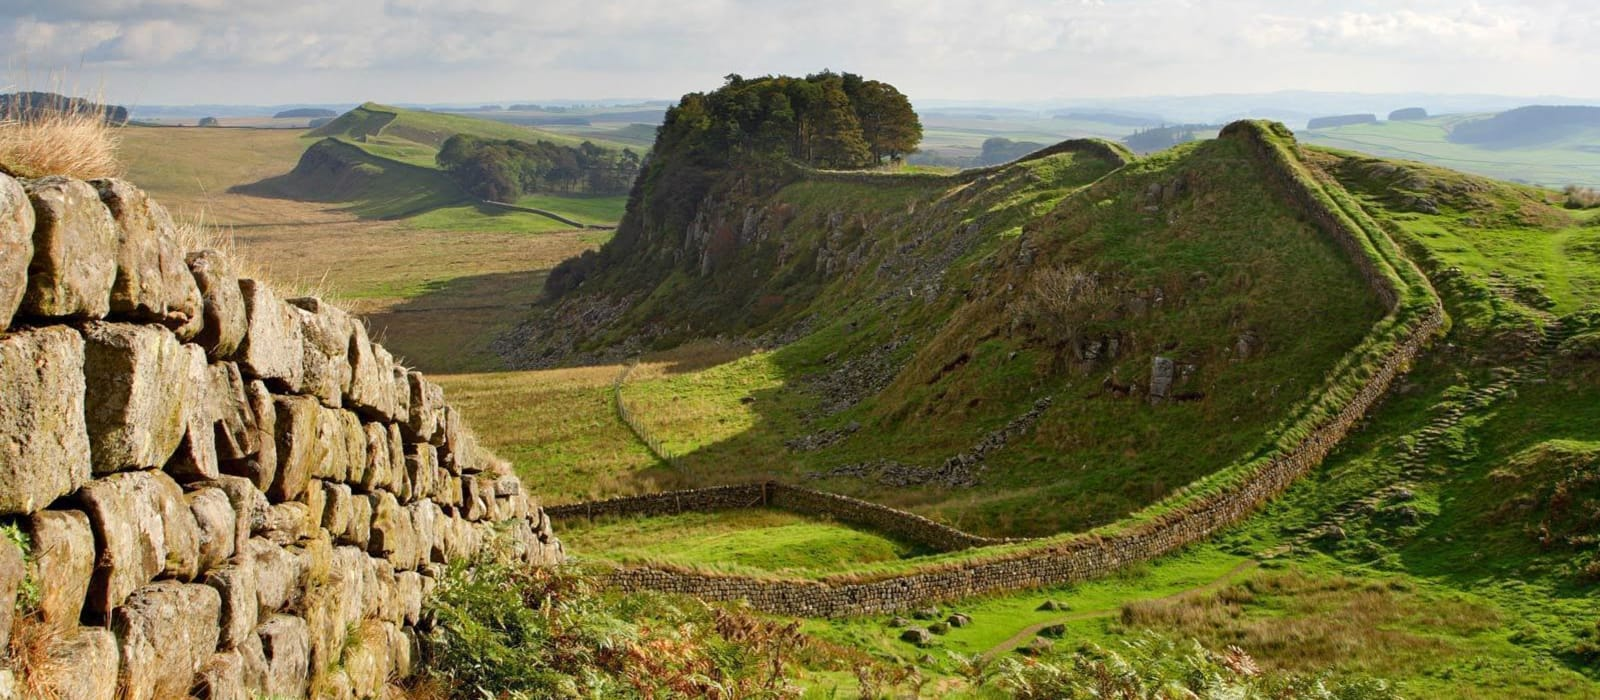 2021 challenge: Walk 13 miles of Hadrians Wall